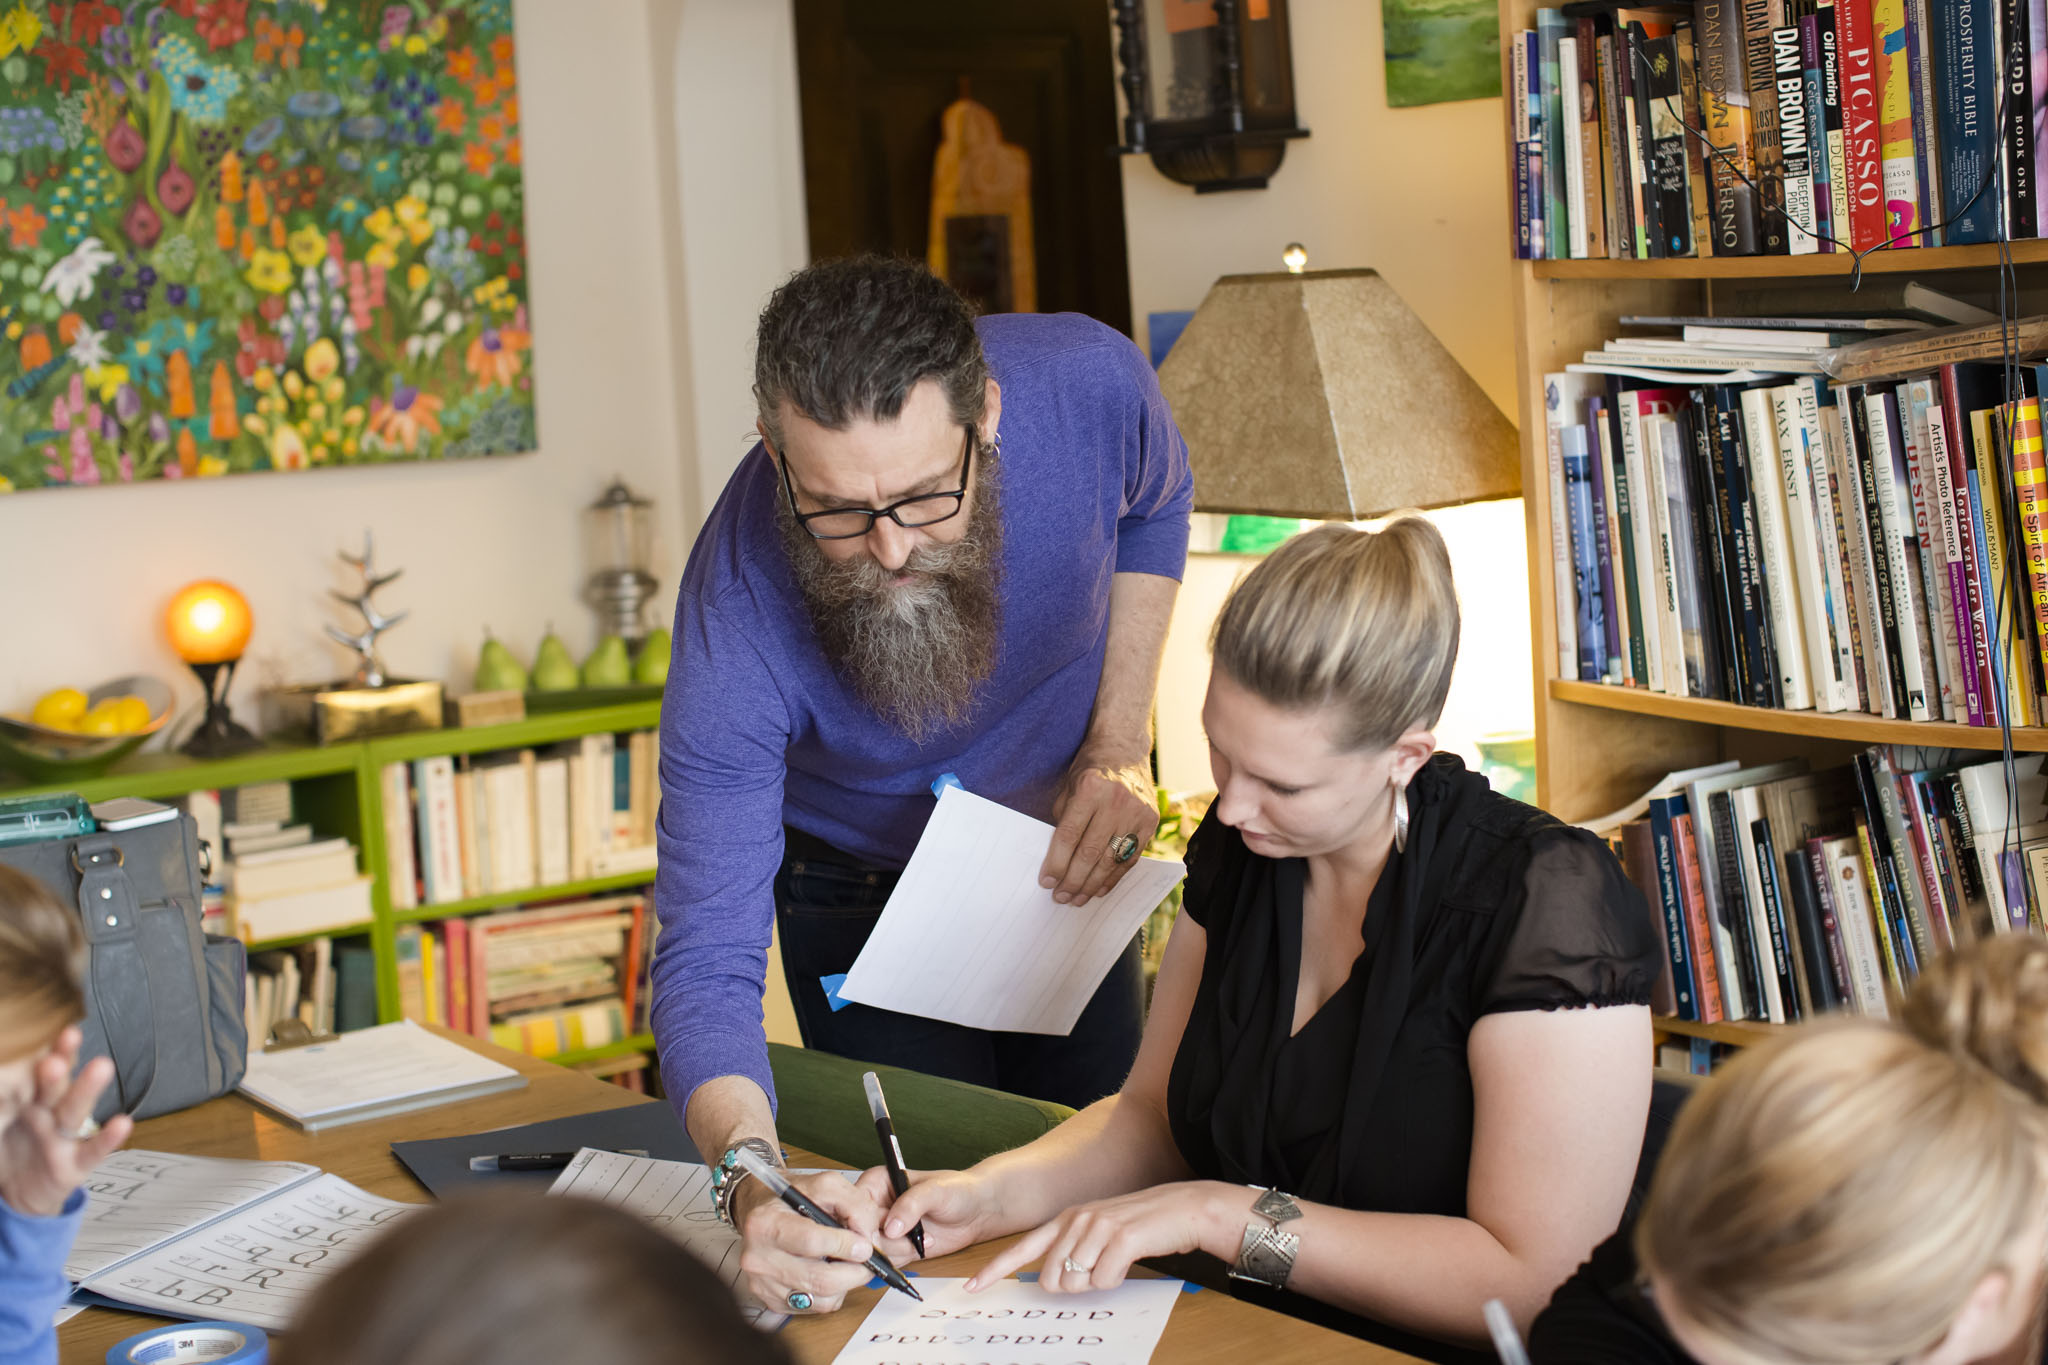 Over 4,000 people have taken calligraphy and lettering classes on Dabble since 2011.